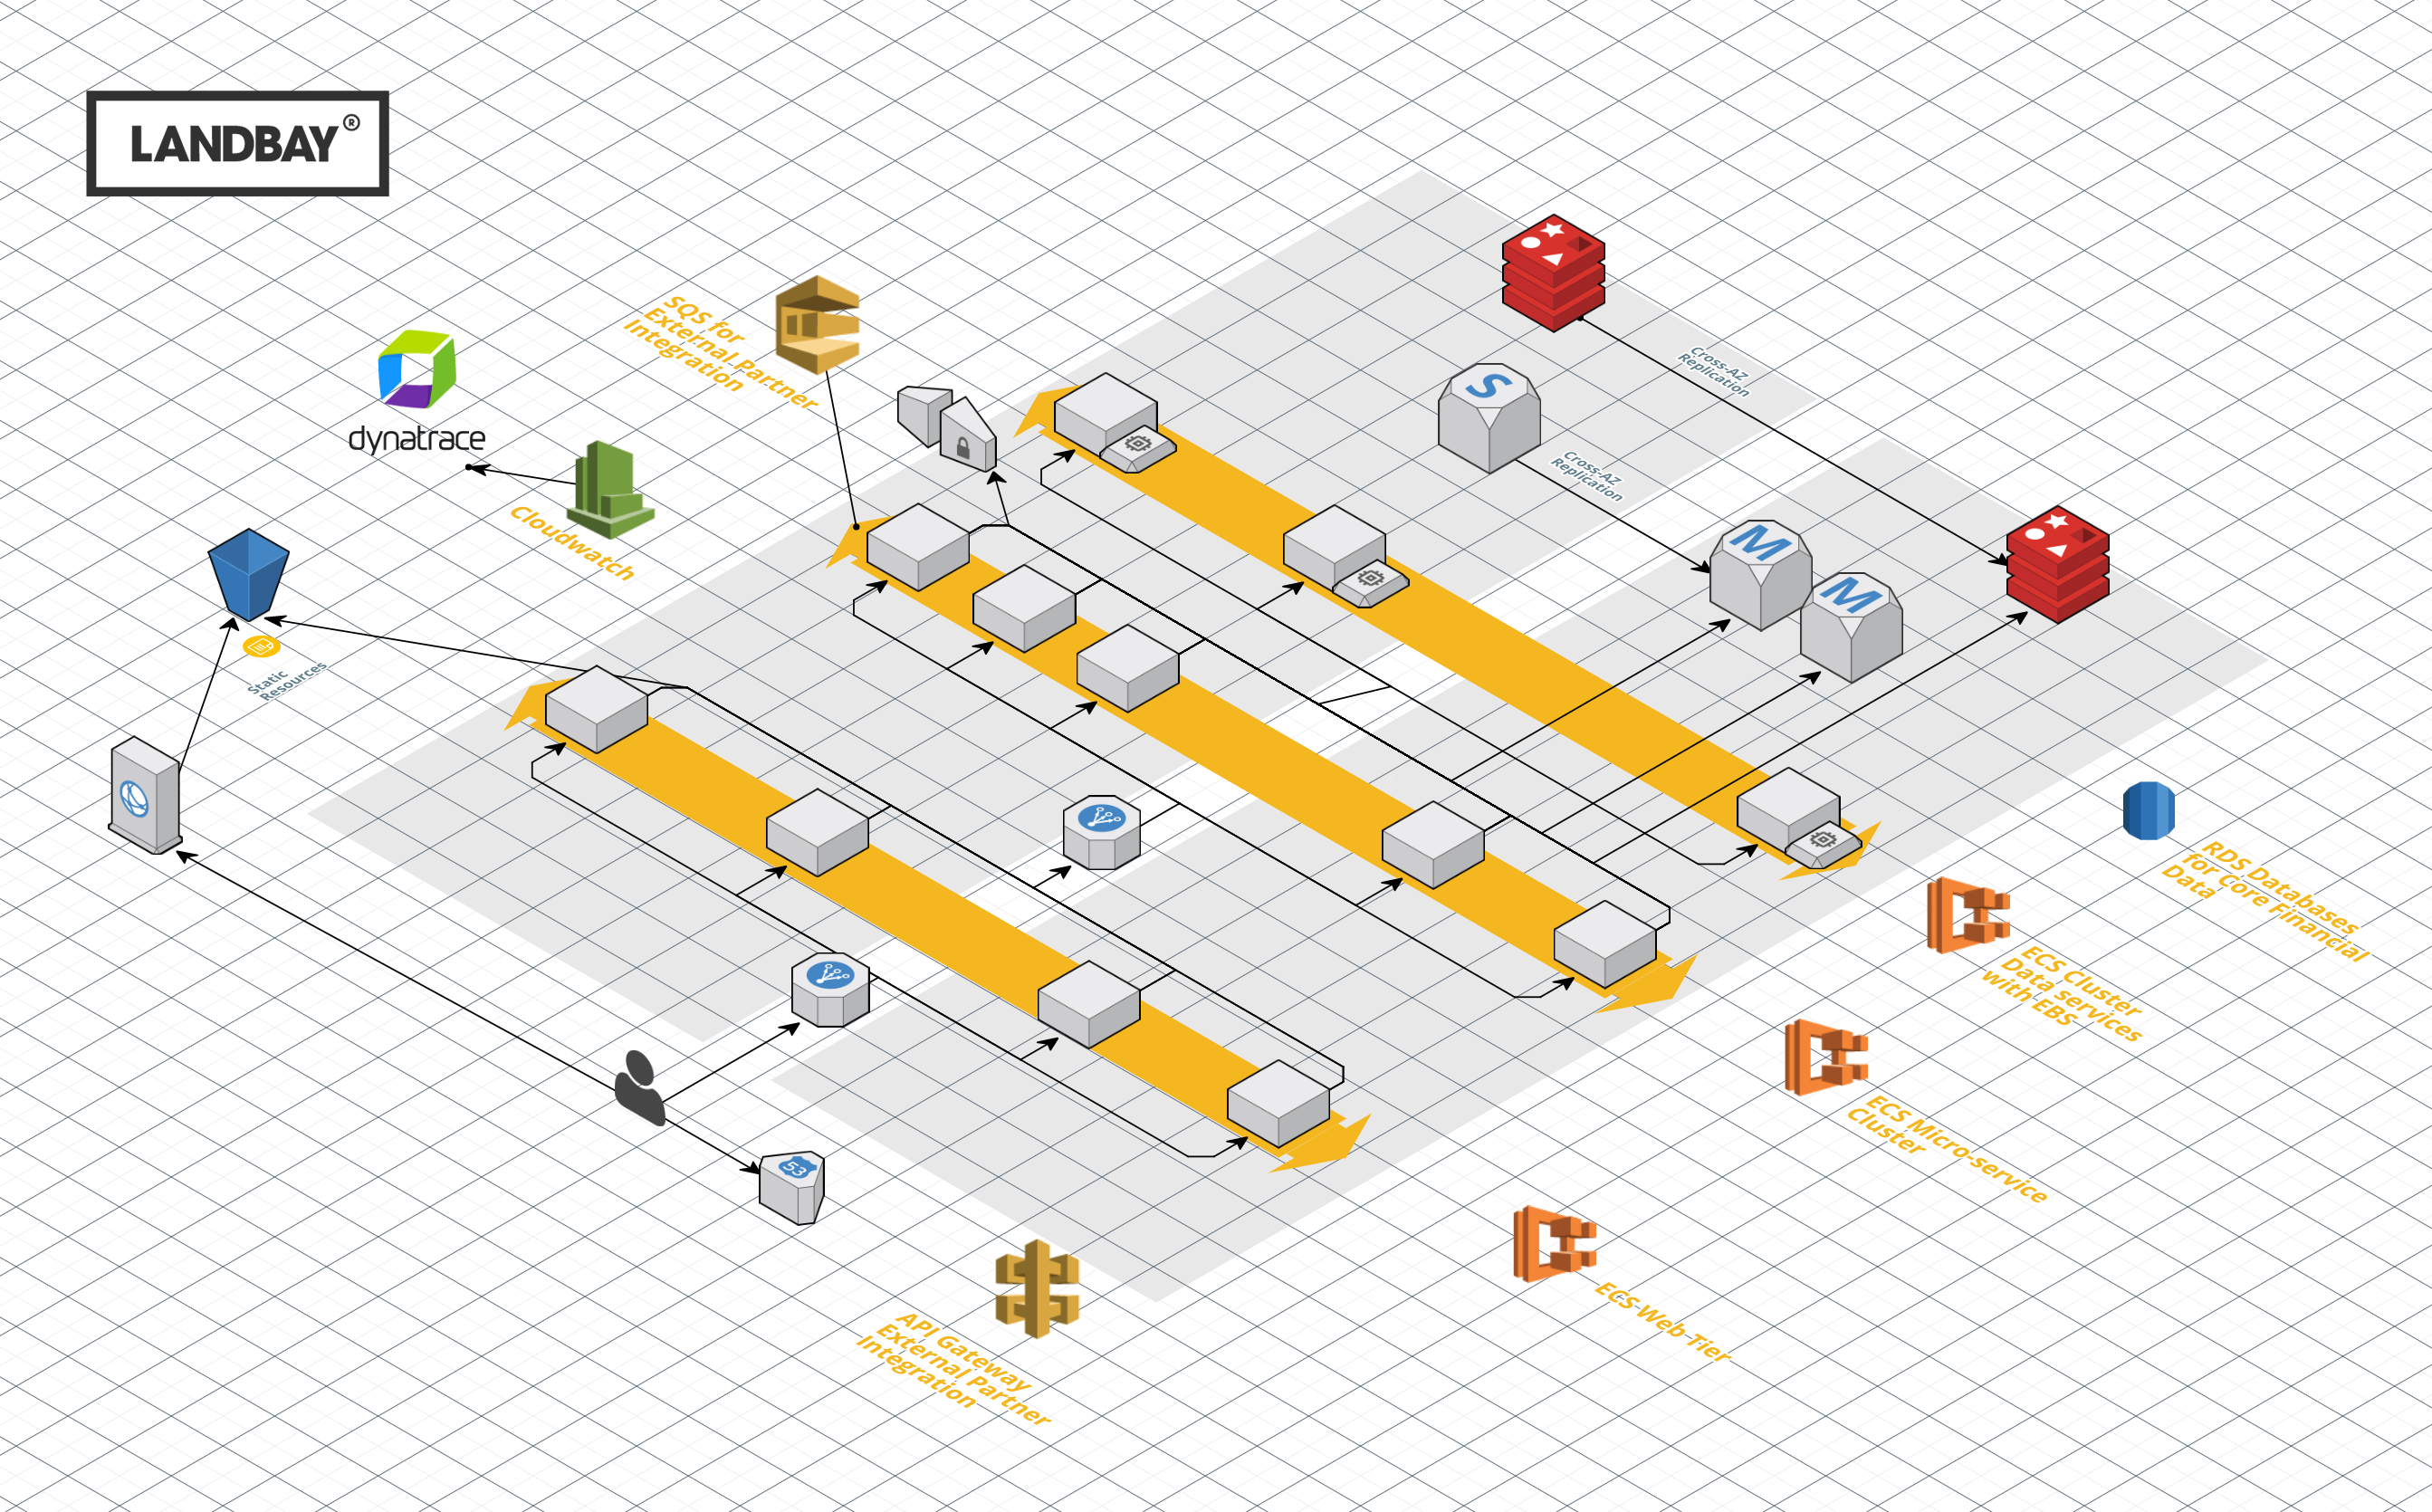 Landbay AWS Diagram